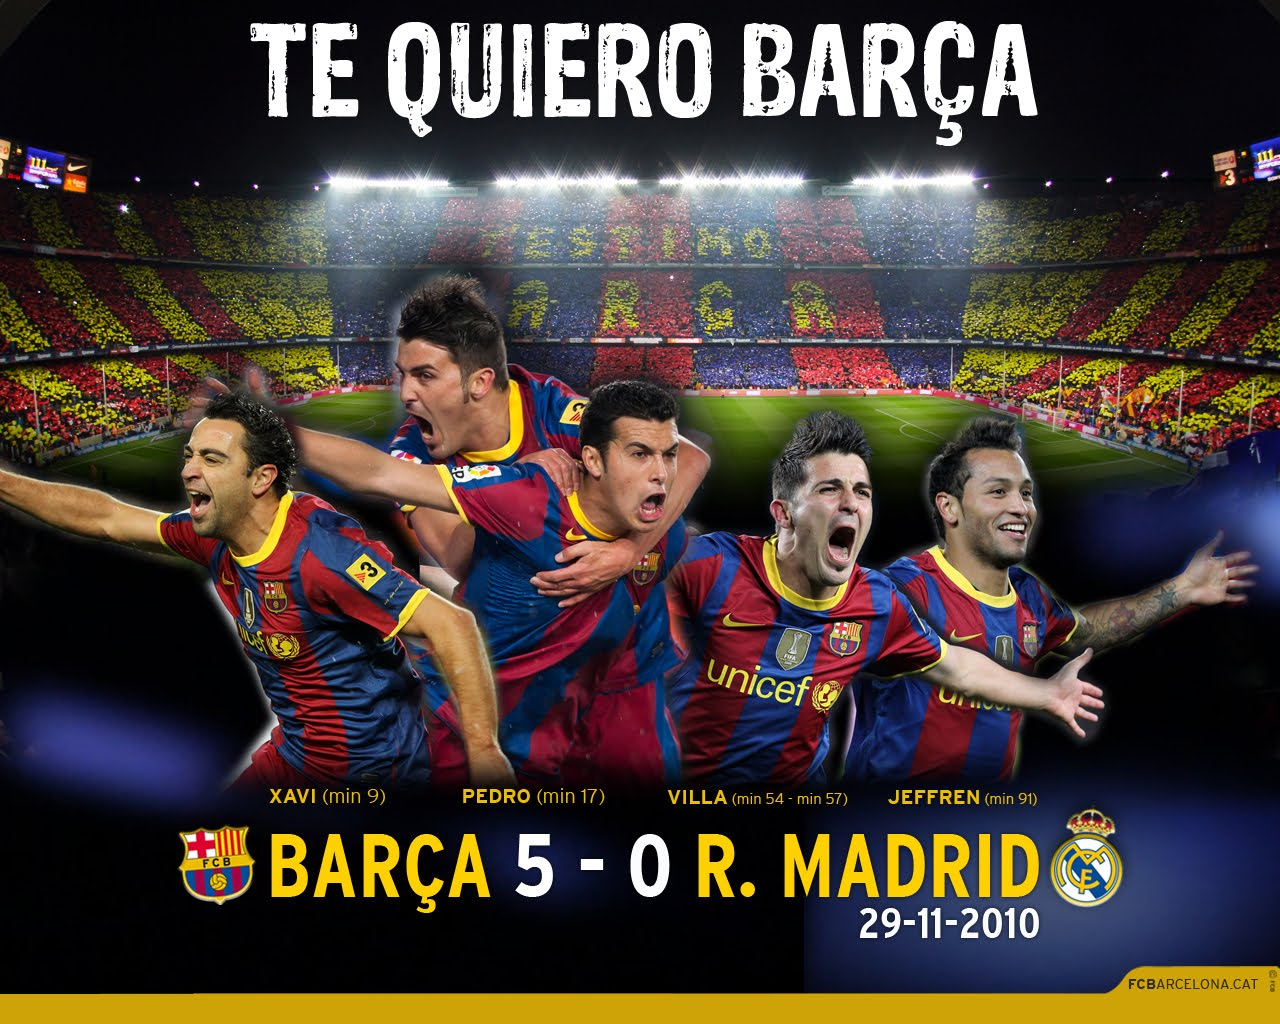 Imagenes Chistosas Real Madrid Humillando Barcelona